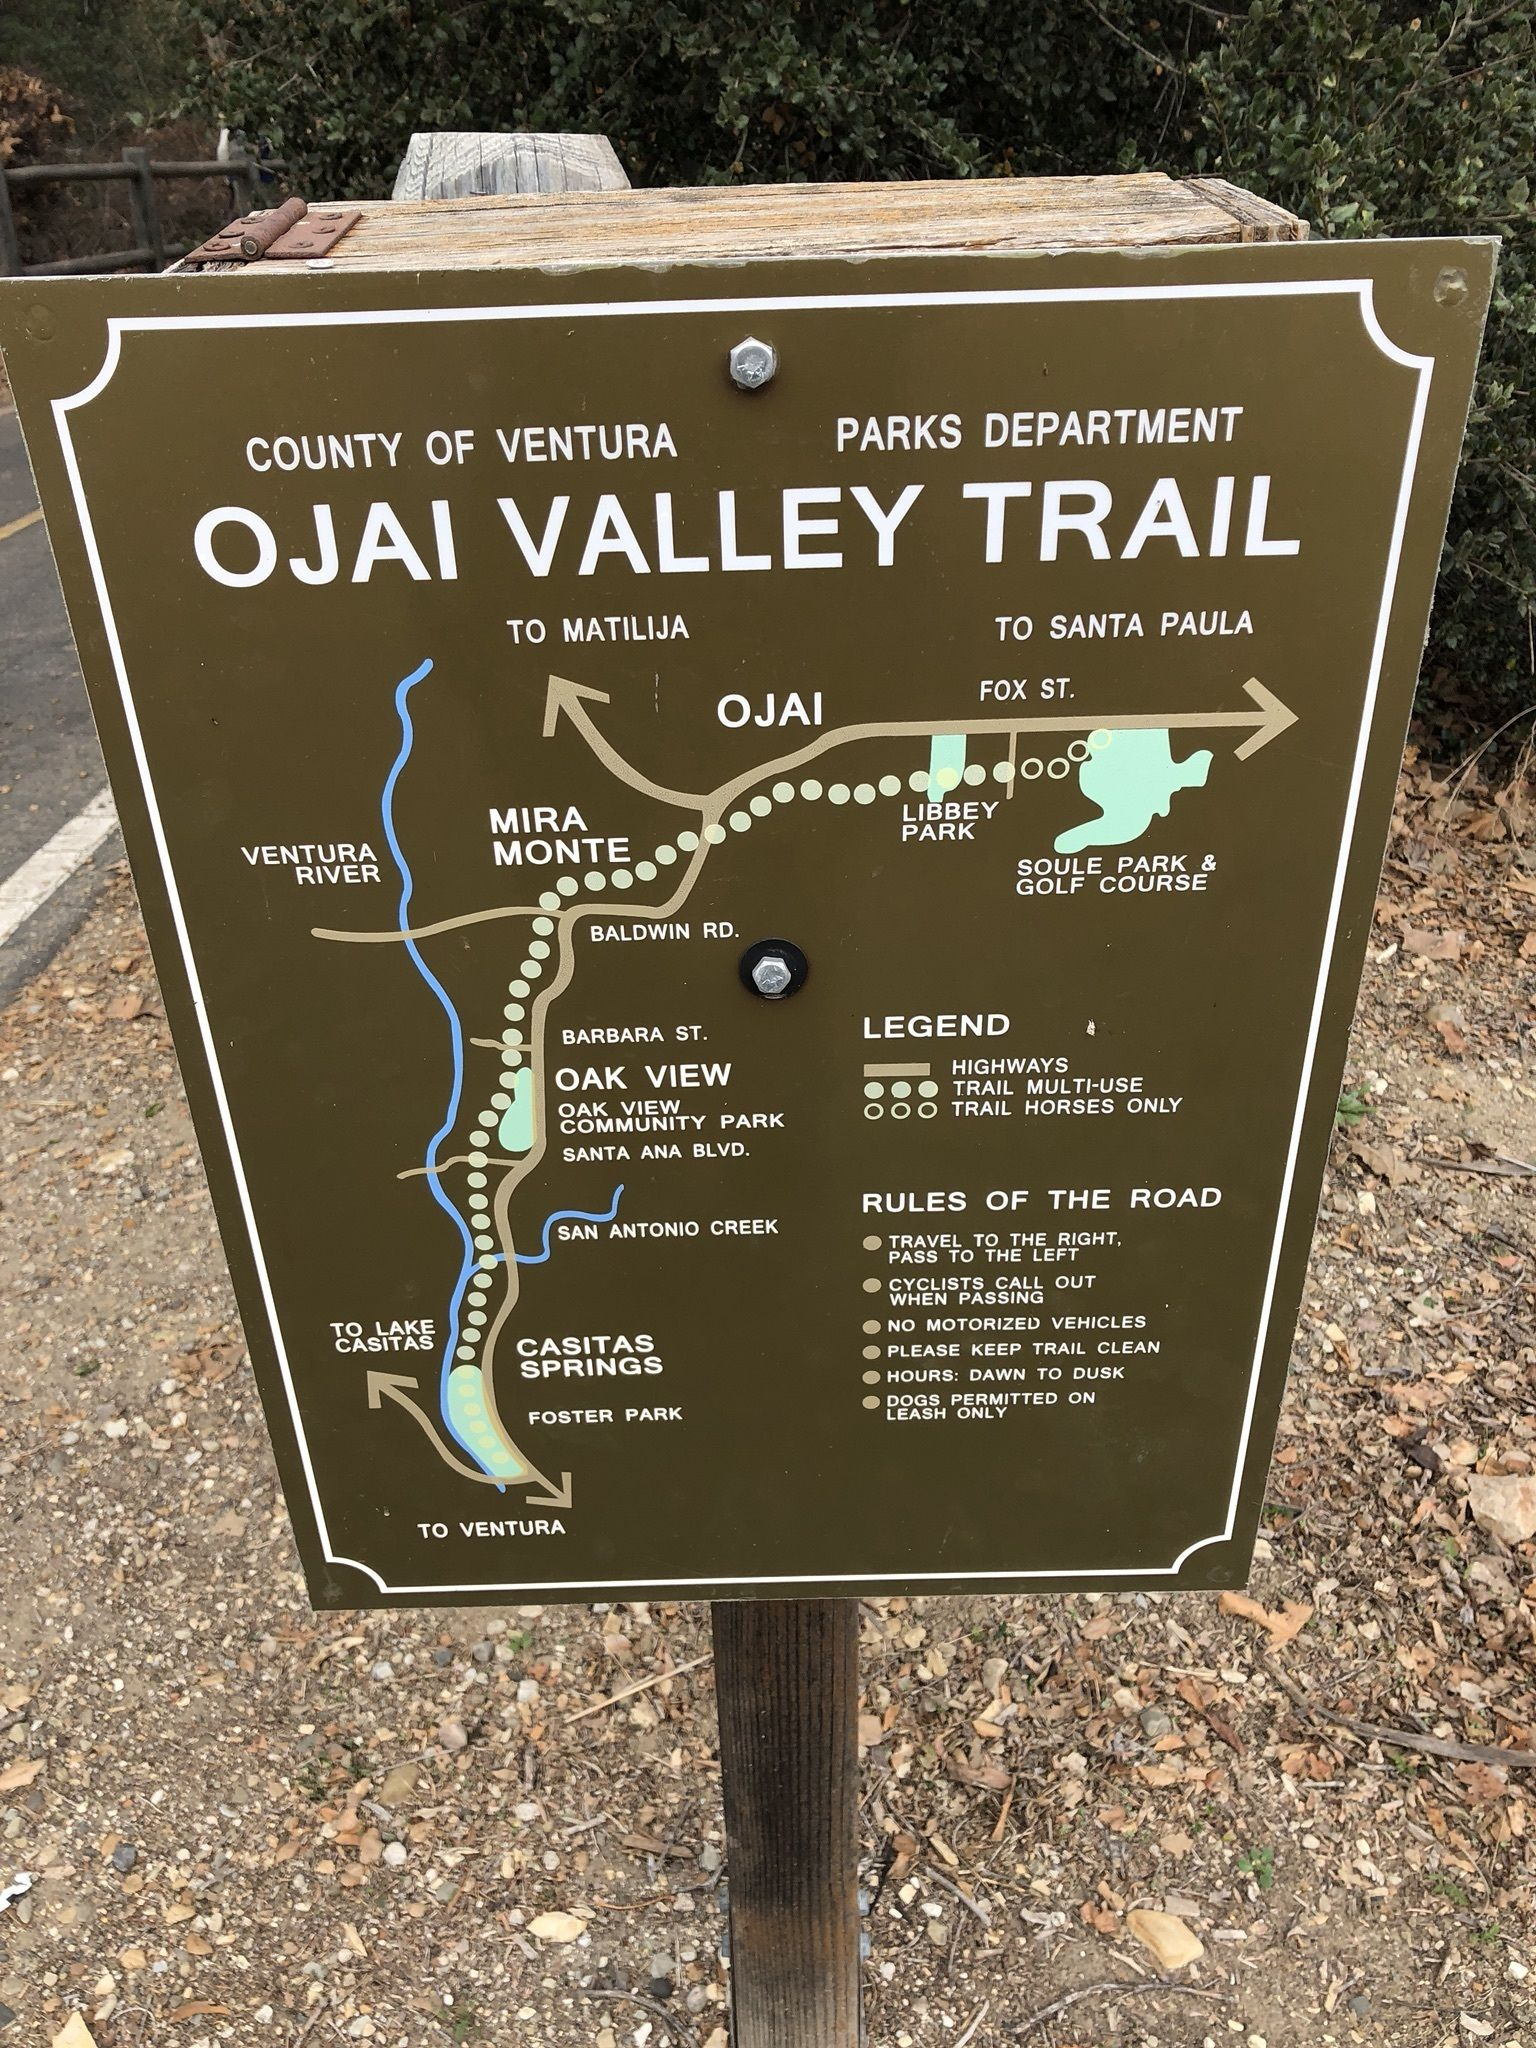 Ojai-Ventura Bike Path - California | AllTrails